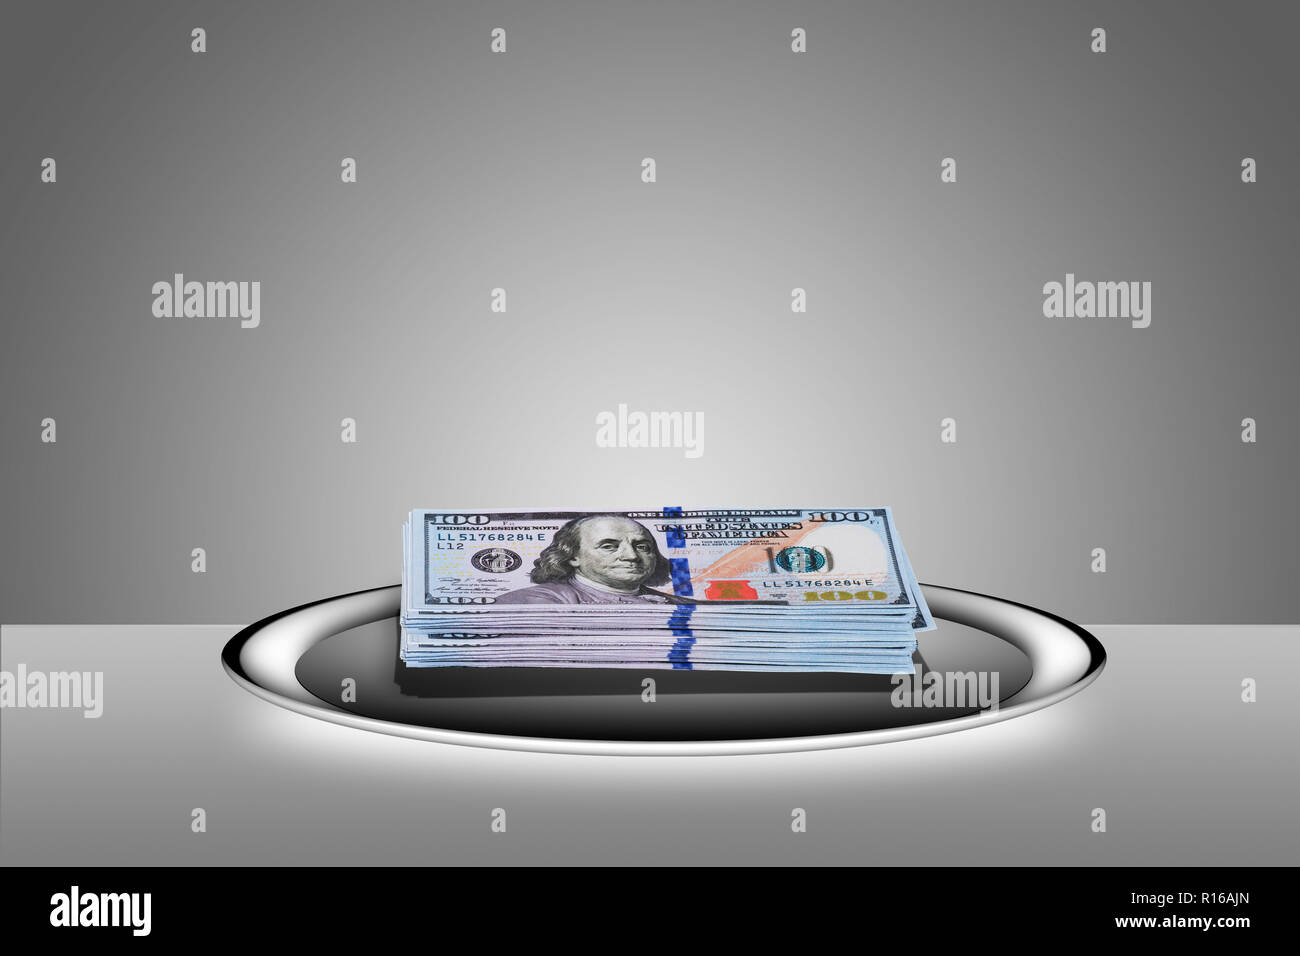 Stacked 100 dollar bills on silver platter - 'hand to on a silver platter' - Stock Image